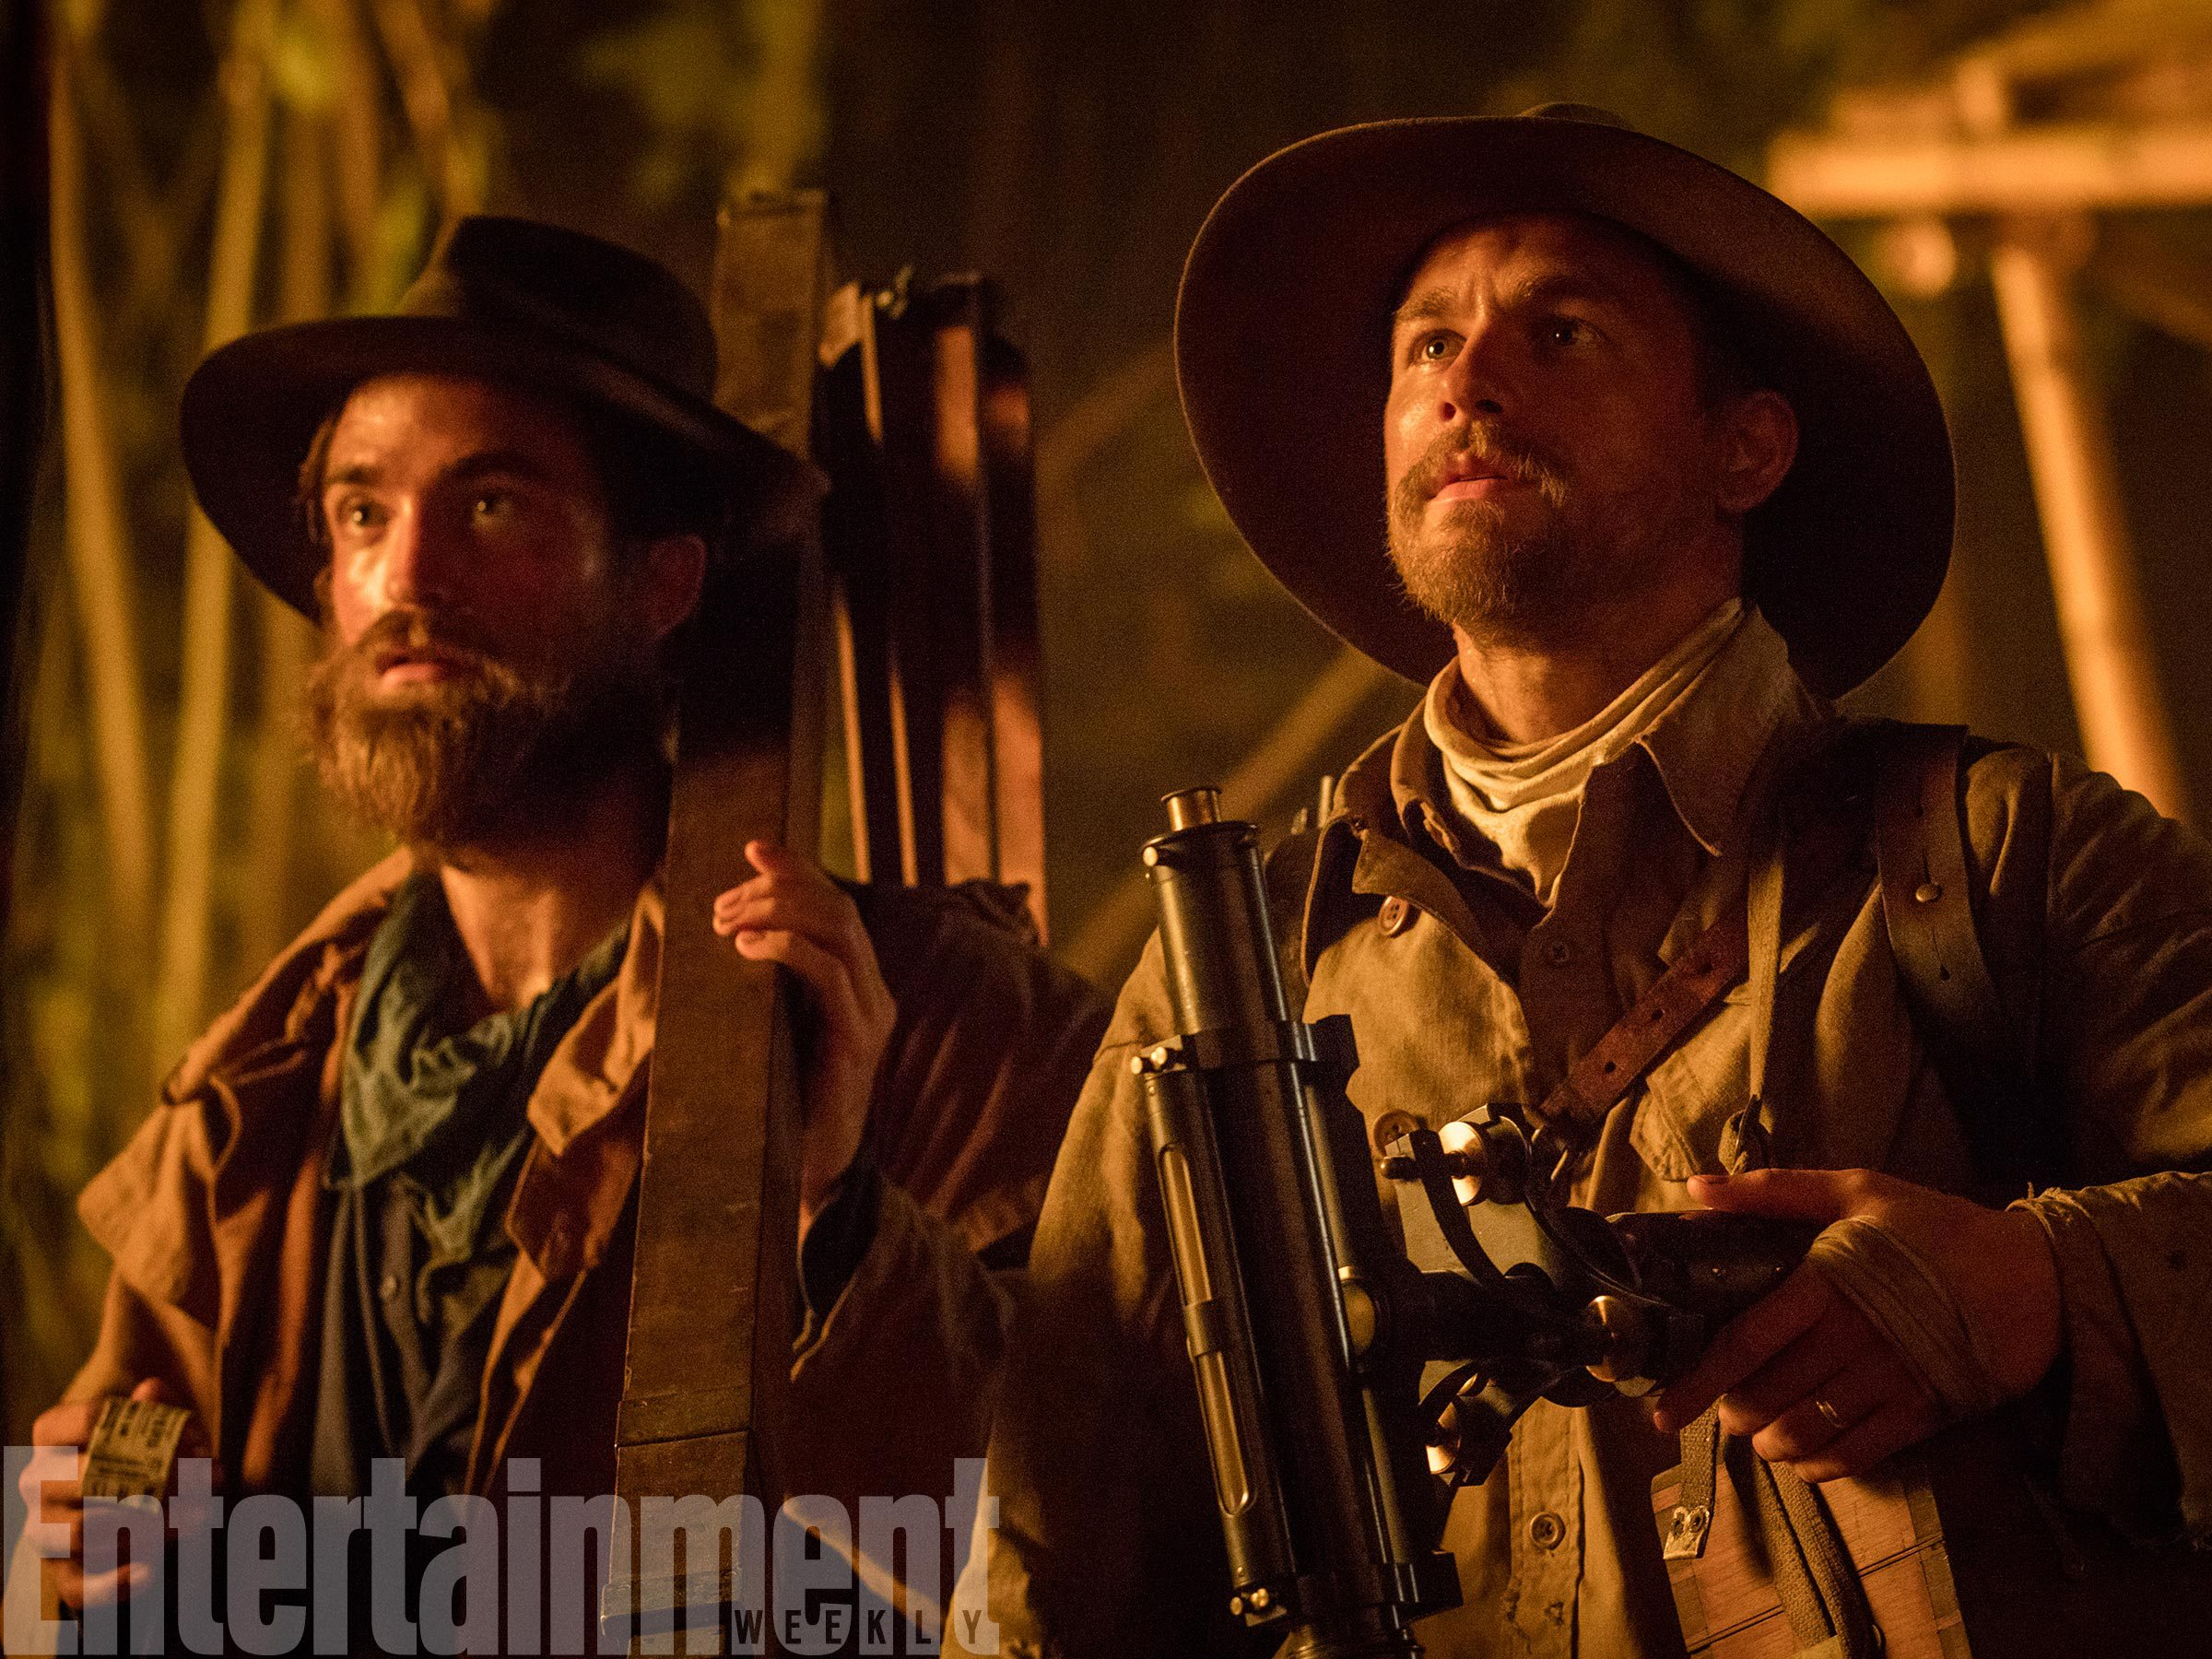 Charlie Hunnam Locates The Lost City Of Z In New Trailer And Pics For James Gray's Adventure Movie